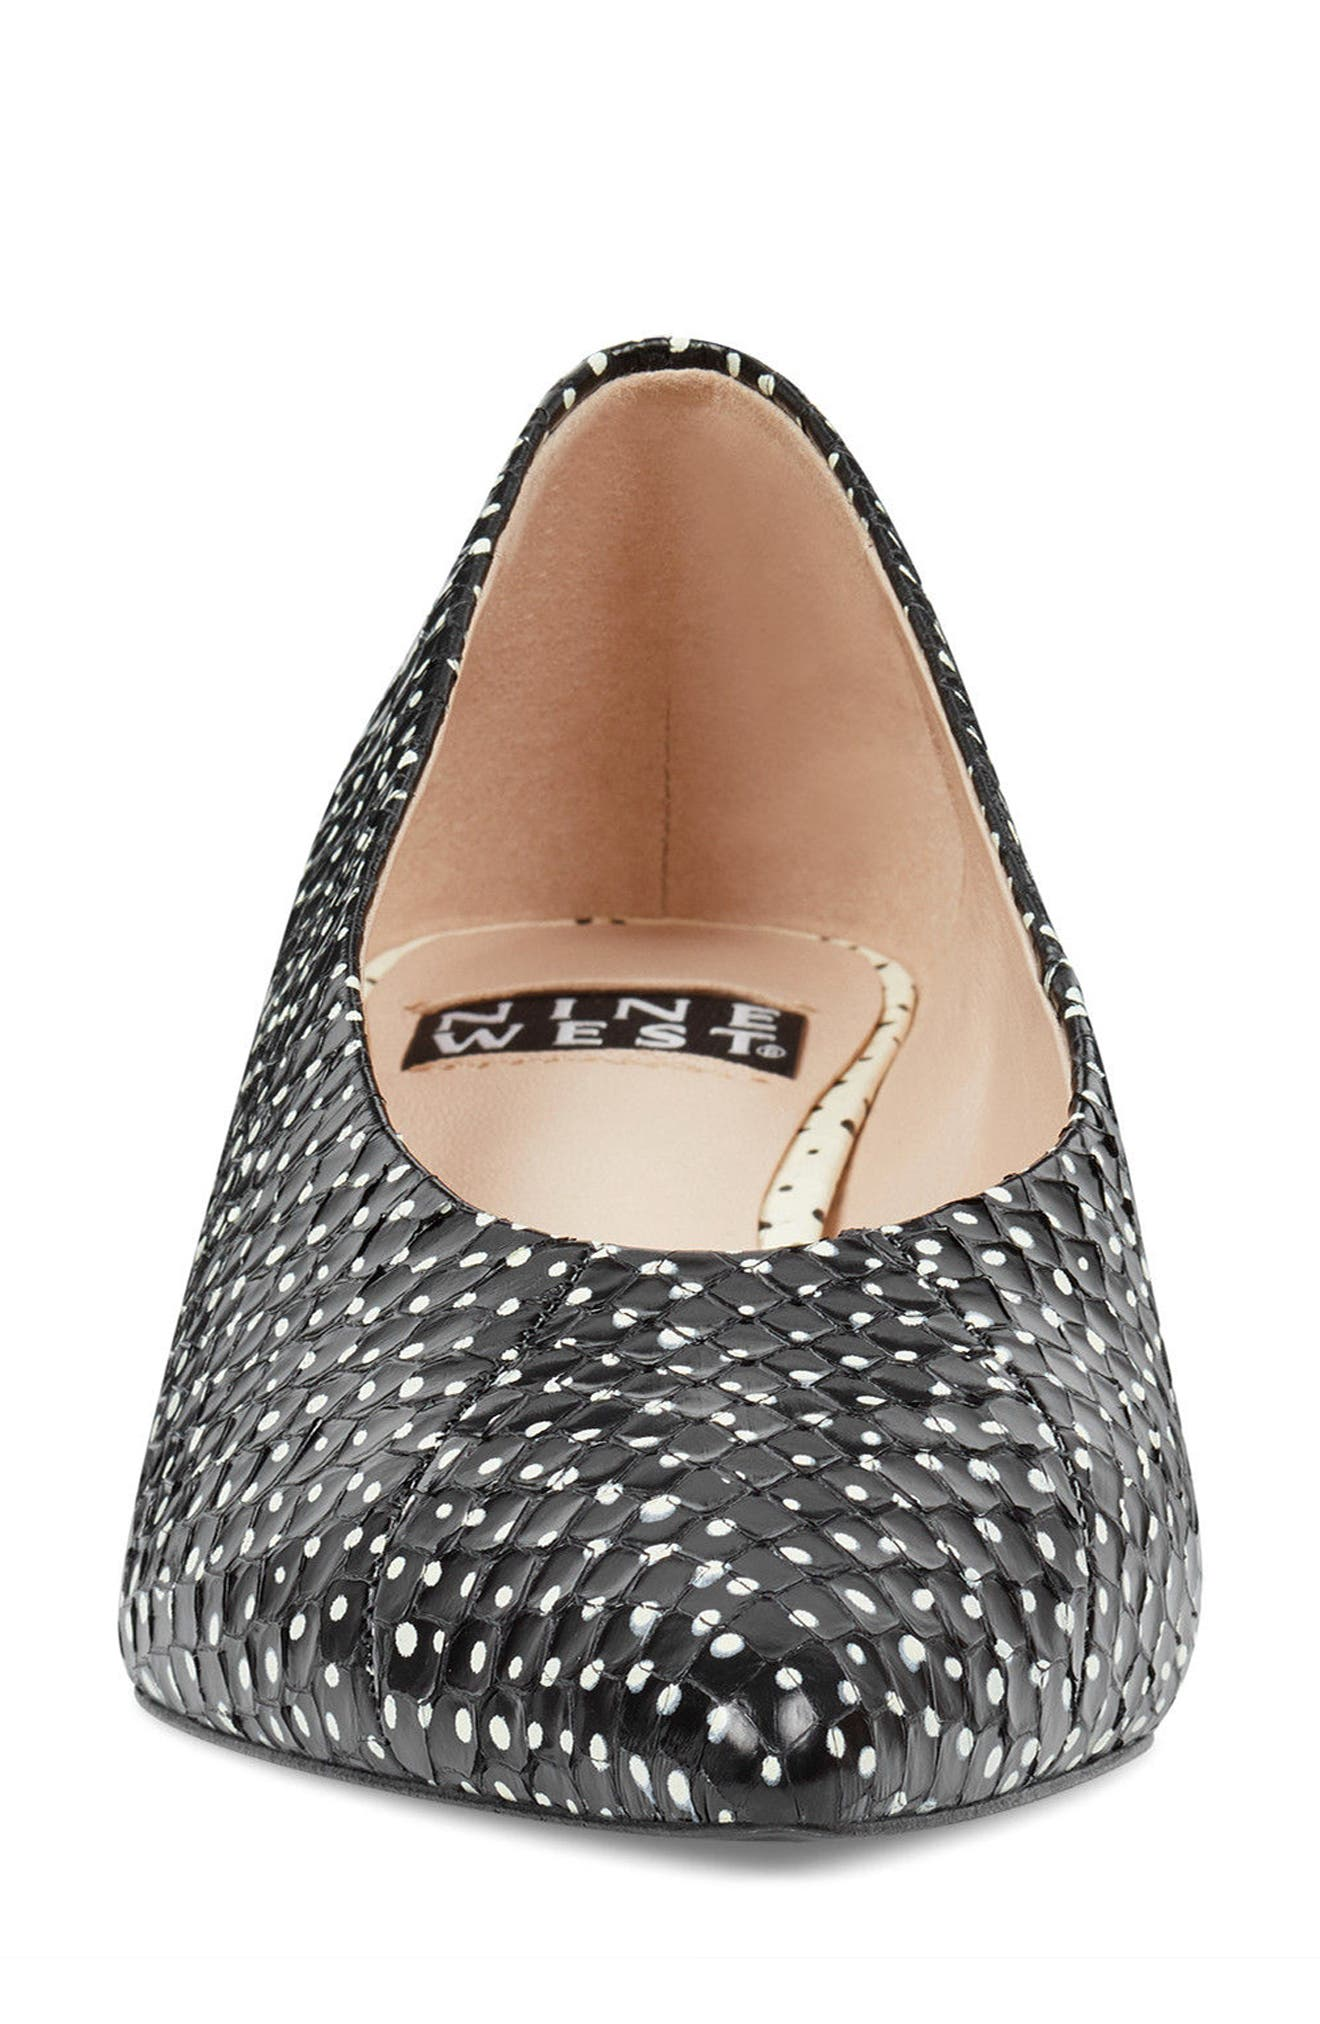 Kendra - 40th Anniversary Capsule Collection Pump,                             Alternate thumbnail 4, color,                             BLACK/ OFF WHITE PRINT LEATHER